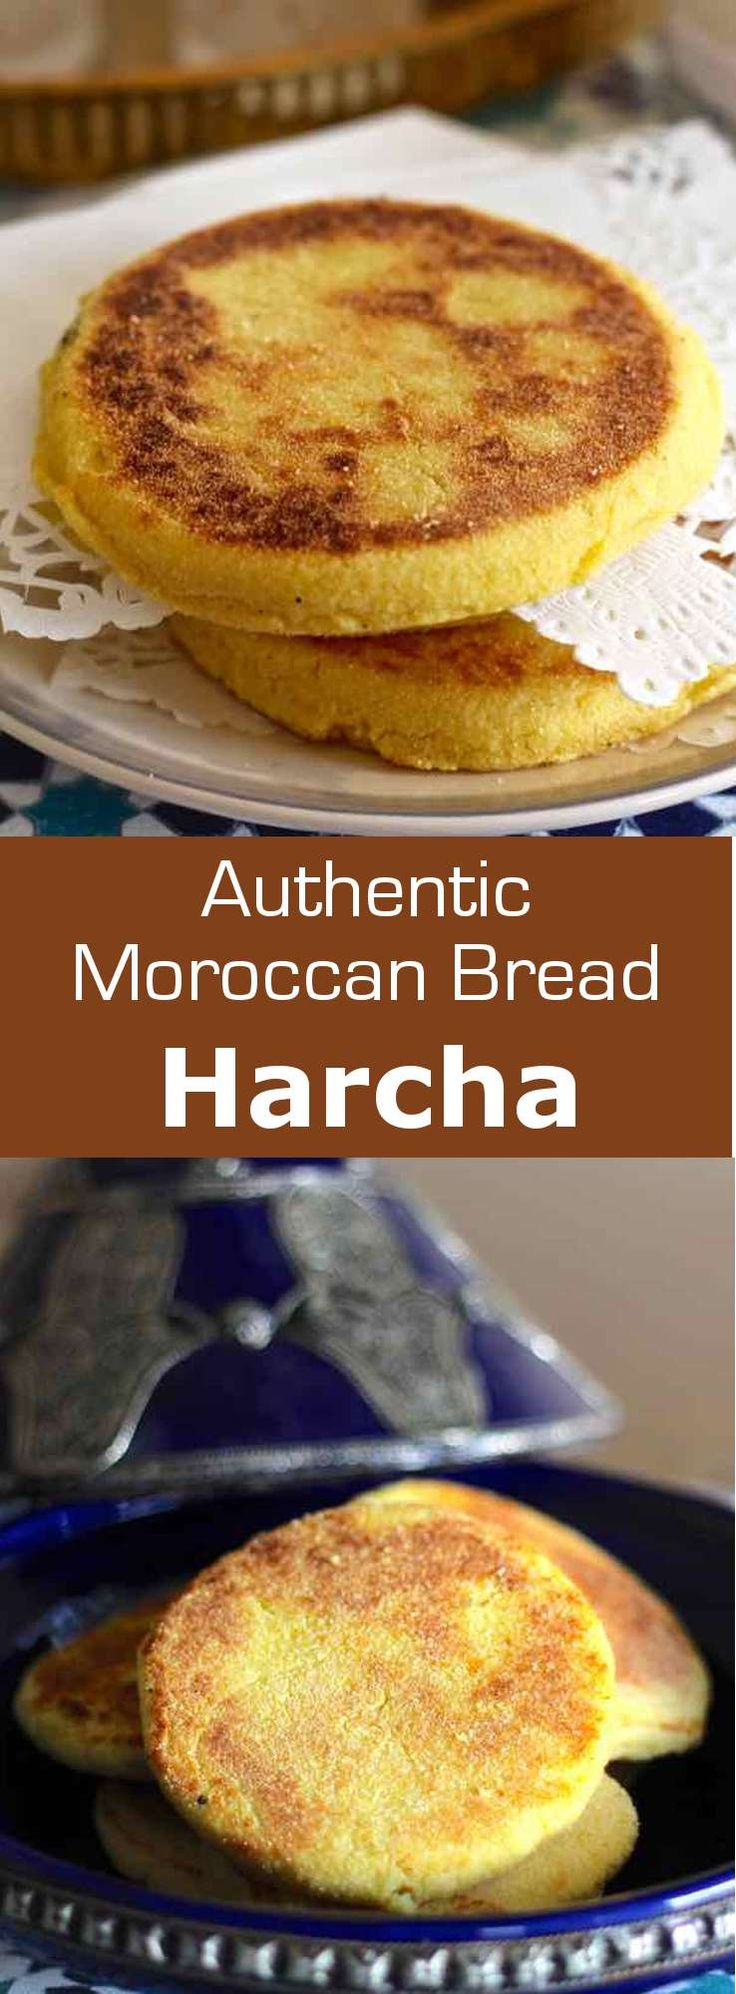 Harcha (حرشة) is a Moroccan bread that takes the shape of a galette and is prepared with semolina and butter or olive oil. #Morocco #Moroccan #MoroccanCuisine #MoroccanRecipe #MoroccanFood #MoroccanBread #Bread #BreadRecipe #WorldCuisine #196flavors